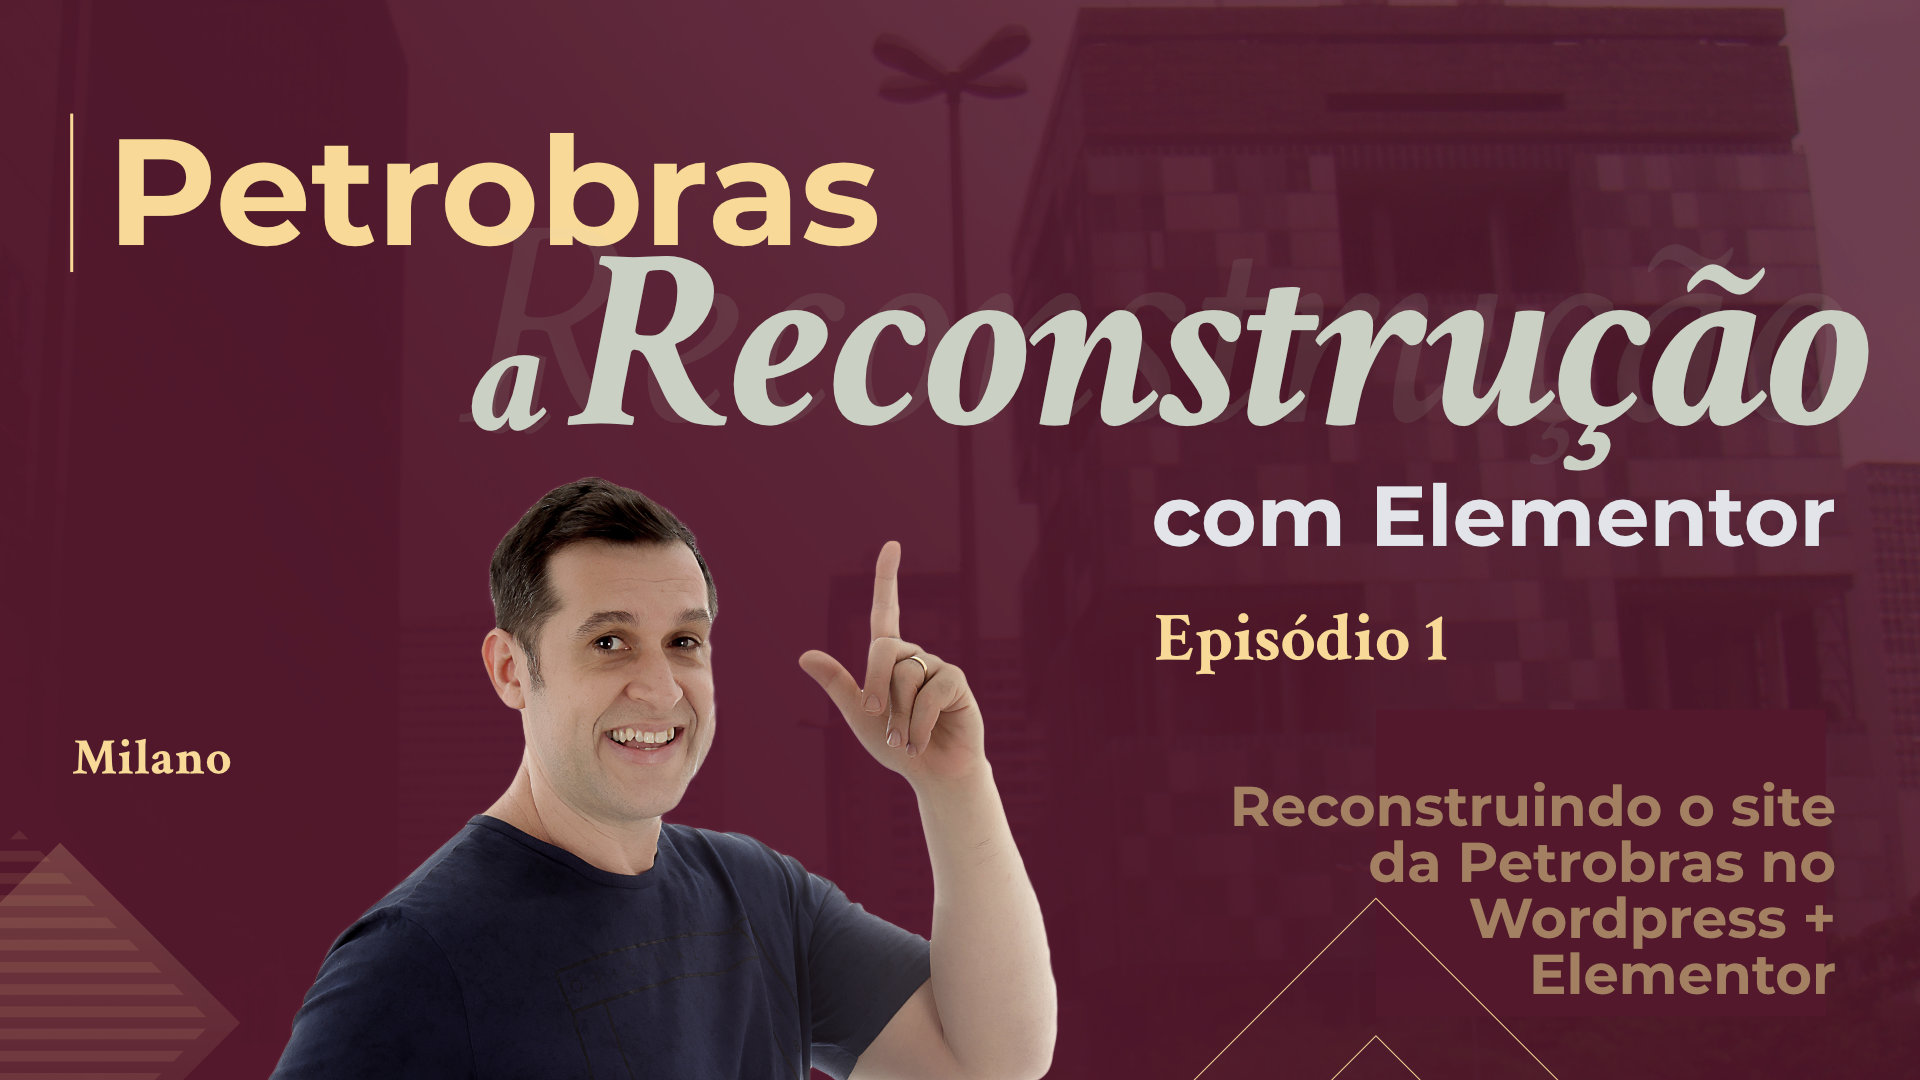 Reconstrução do site da Petrobras com Elementor e Wordpress